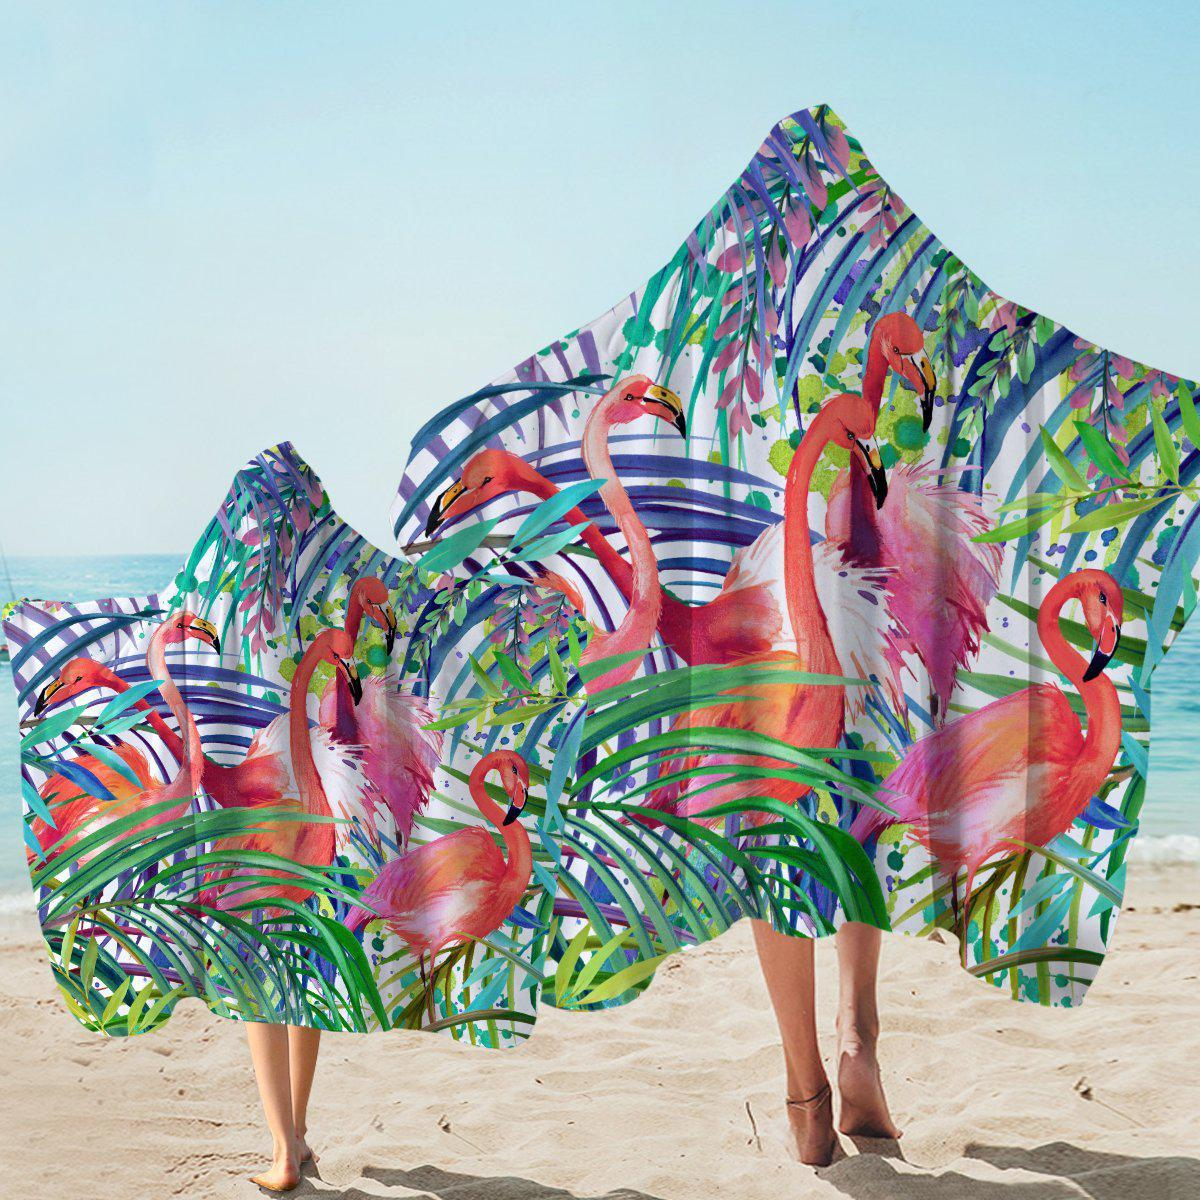 Hooded Beach Towel-Flamingo Passion Hooded Towel-Coastal Passion